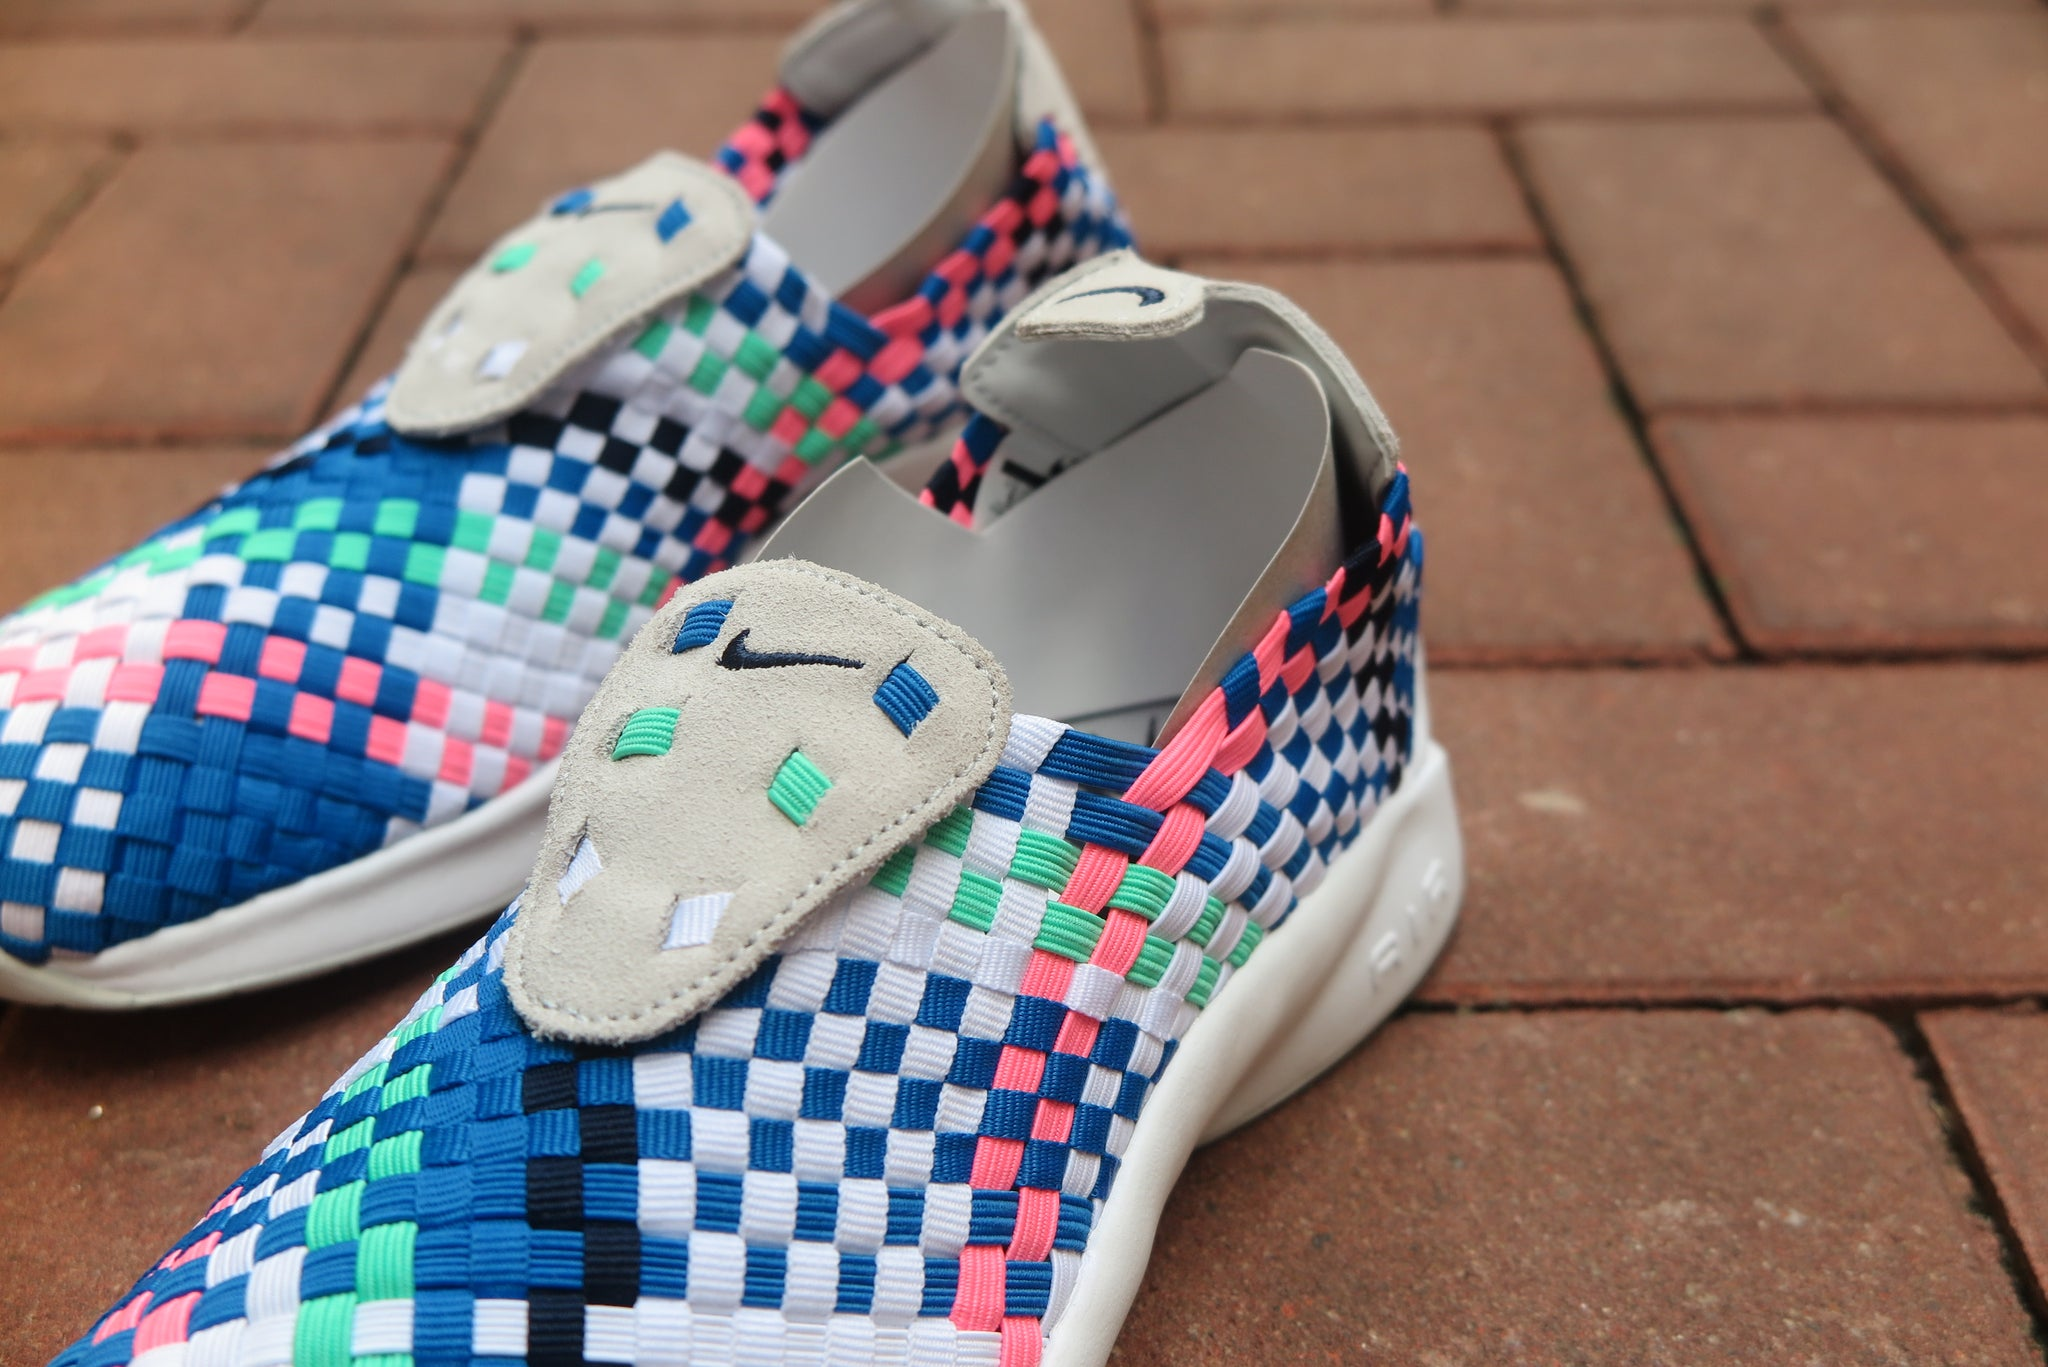 Nike Air Woven - Pure Platinum/Obsidian/White/Blue Nebula #312422-008-Preorder Item-Navy Selected Shop